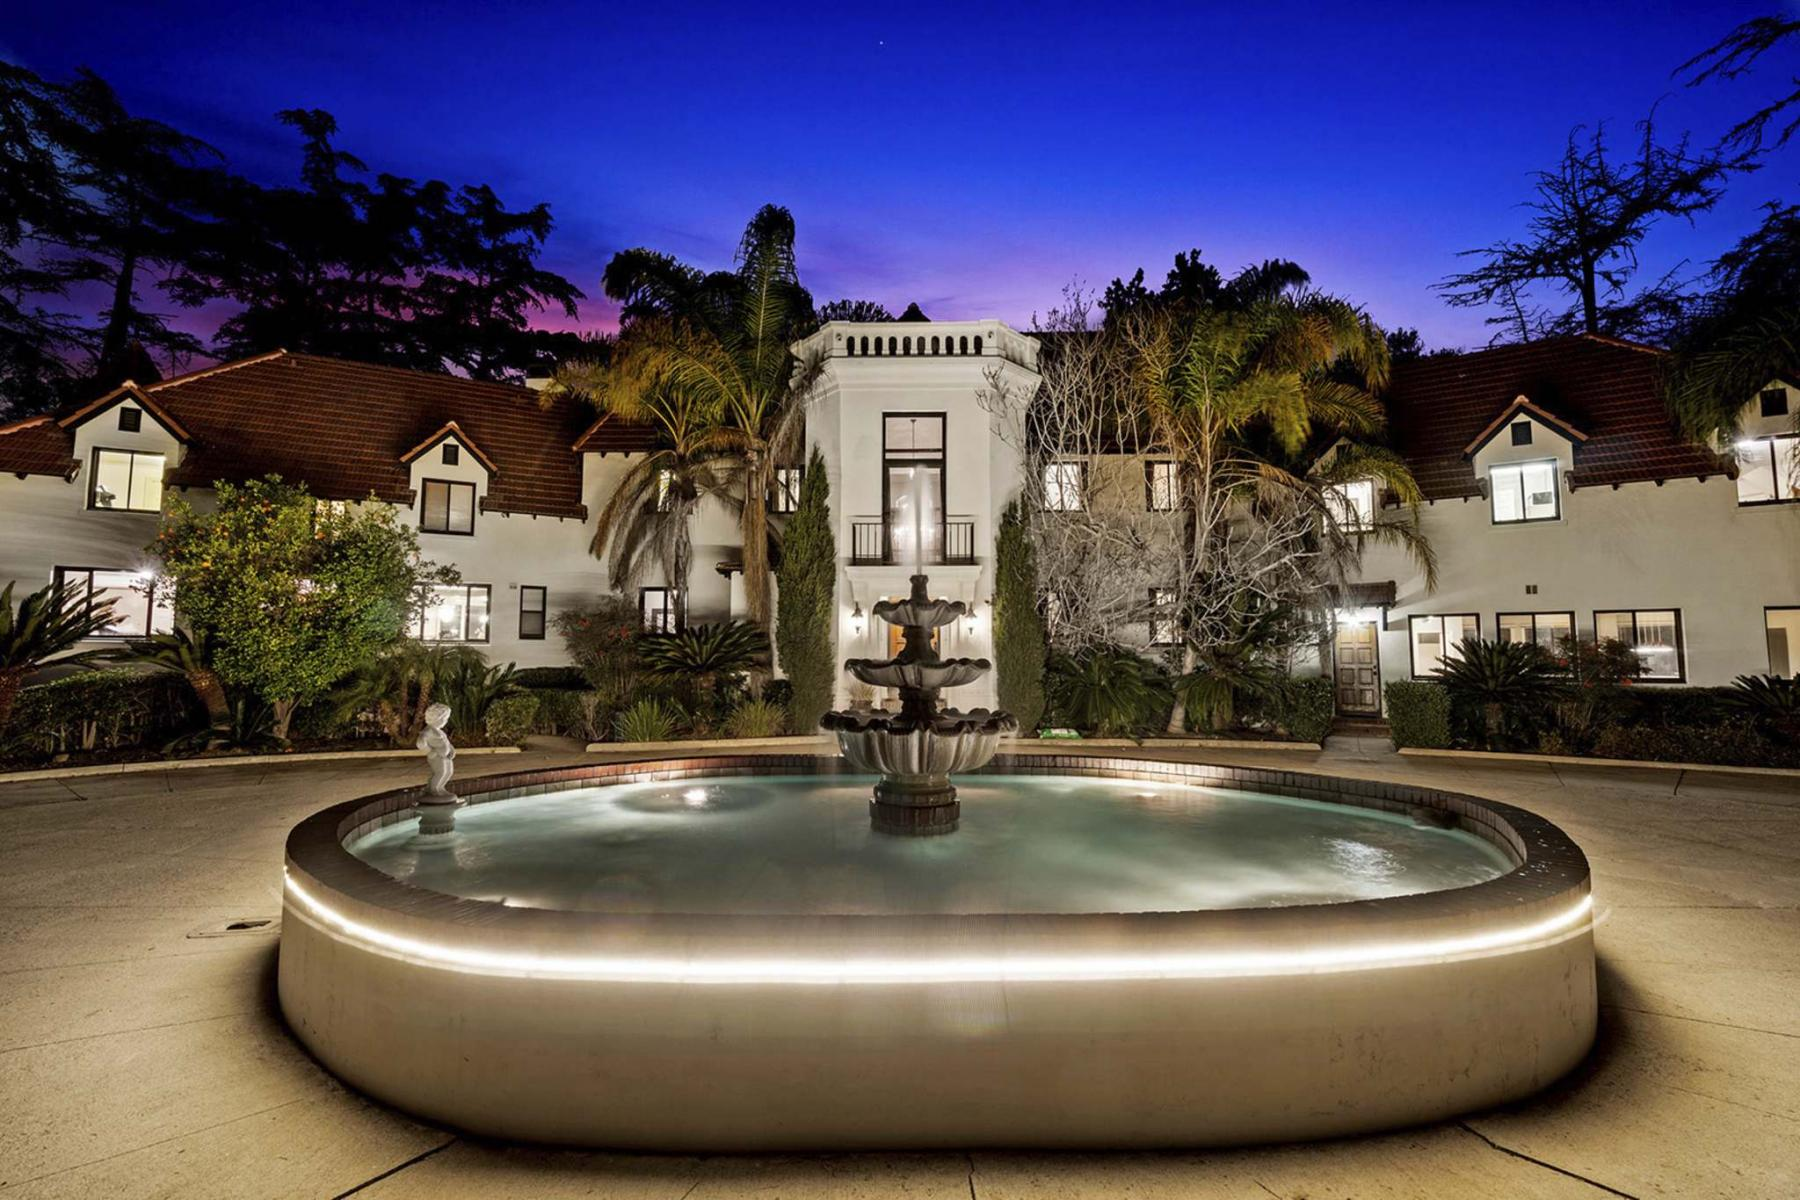 <p>Jeremy Spann / TNS</p><p>Pyrenees Castle, the Alhambra, Calif., home of Phil Spector, is listed for US$4.995 million.</p>